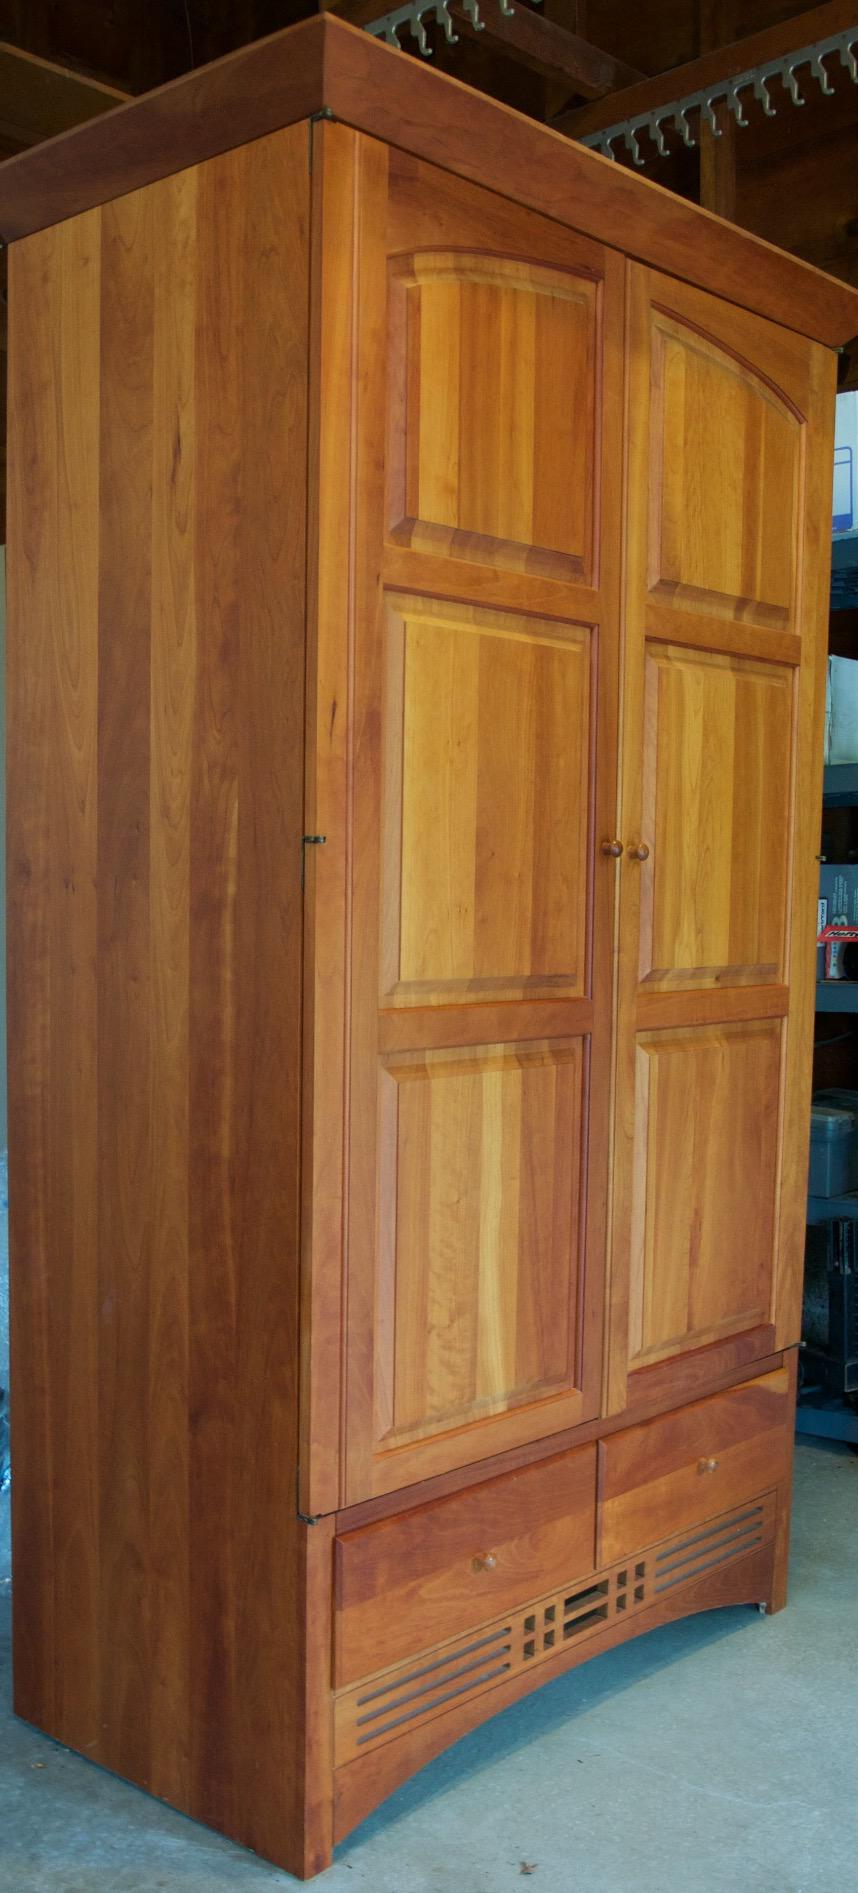 Exceptionnel Vintage Harden Mission Style Solid Cherry Armoire   Image 5 Of 5